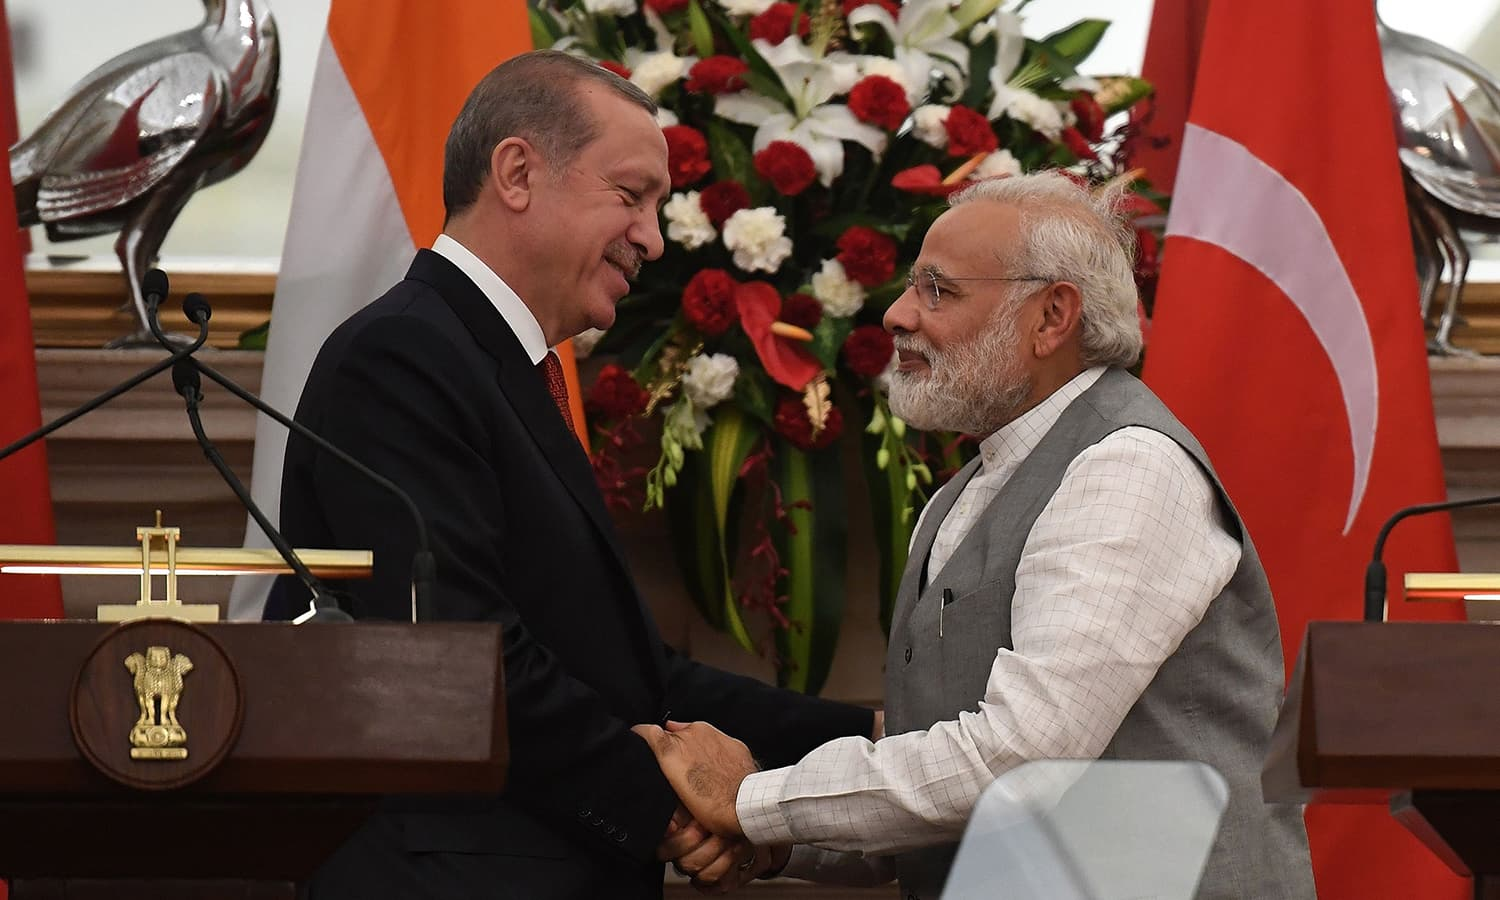 Turkish President Recep Tayyip Erdogan (L) and Indian Prime Minister Narendra Modi greet each other after an exchange of agreements during a joint press conference in New Delhi on May 1. ─ AFP